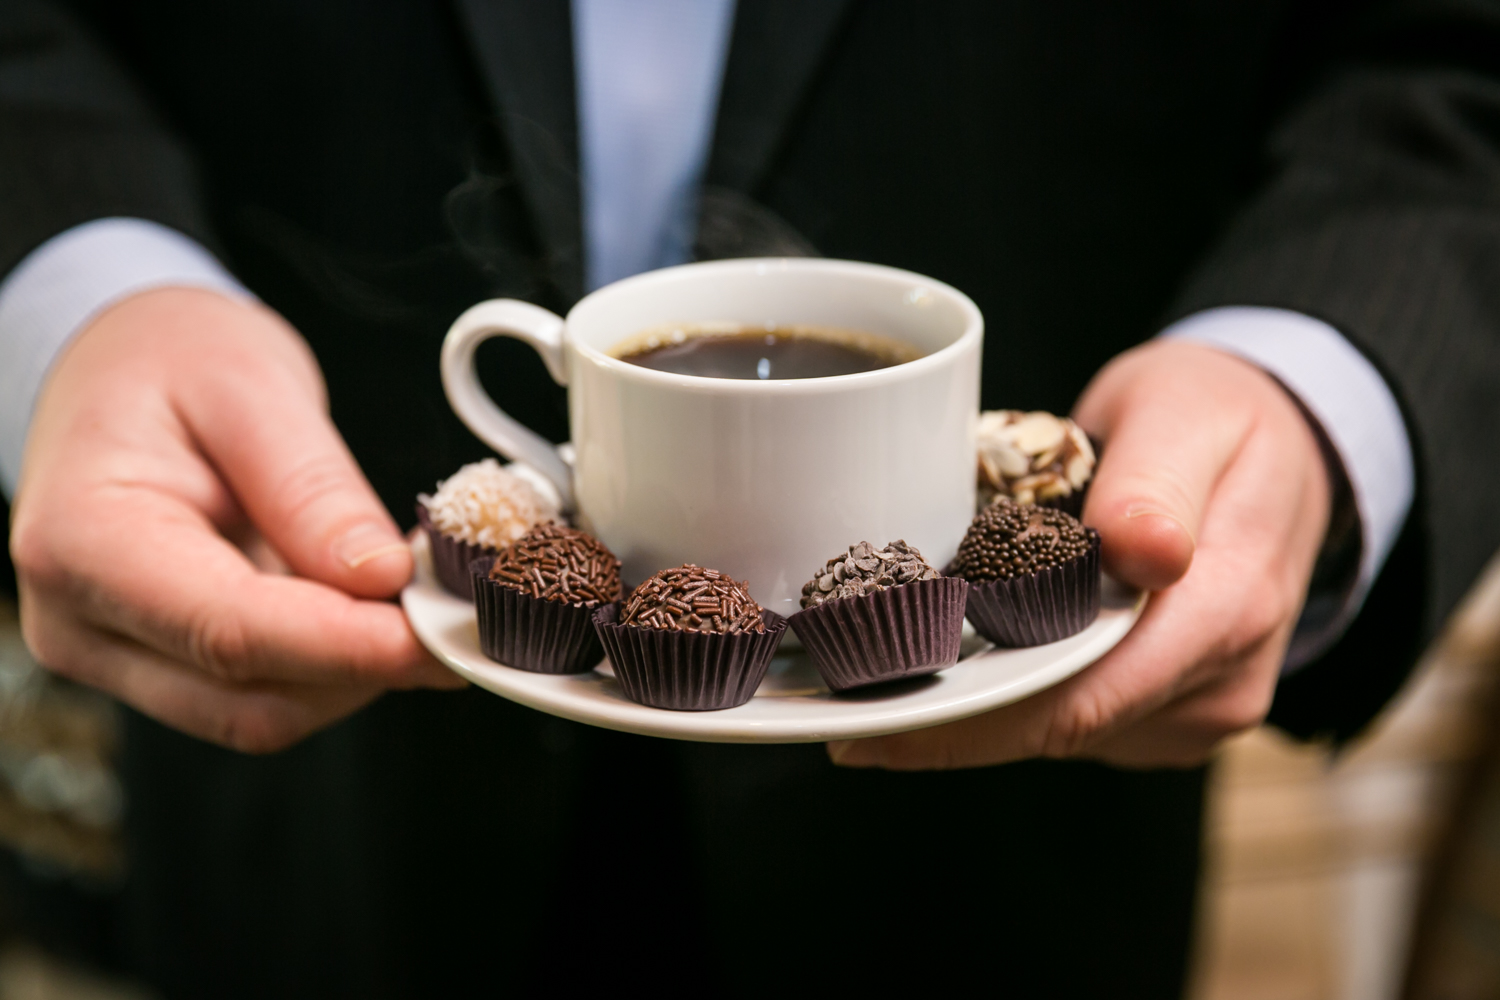 Close up on hands holding coffee cup with brigadeiro candies around the cup